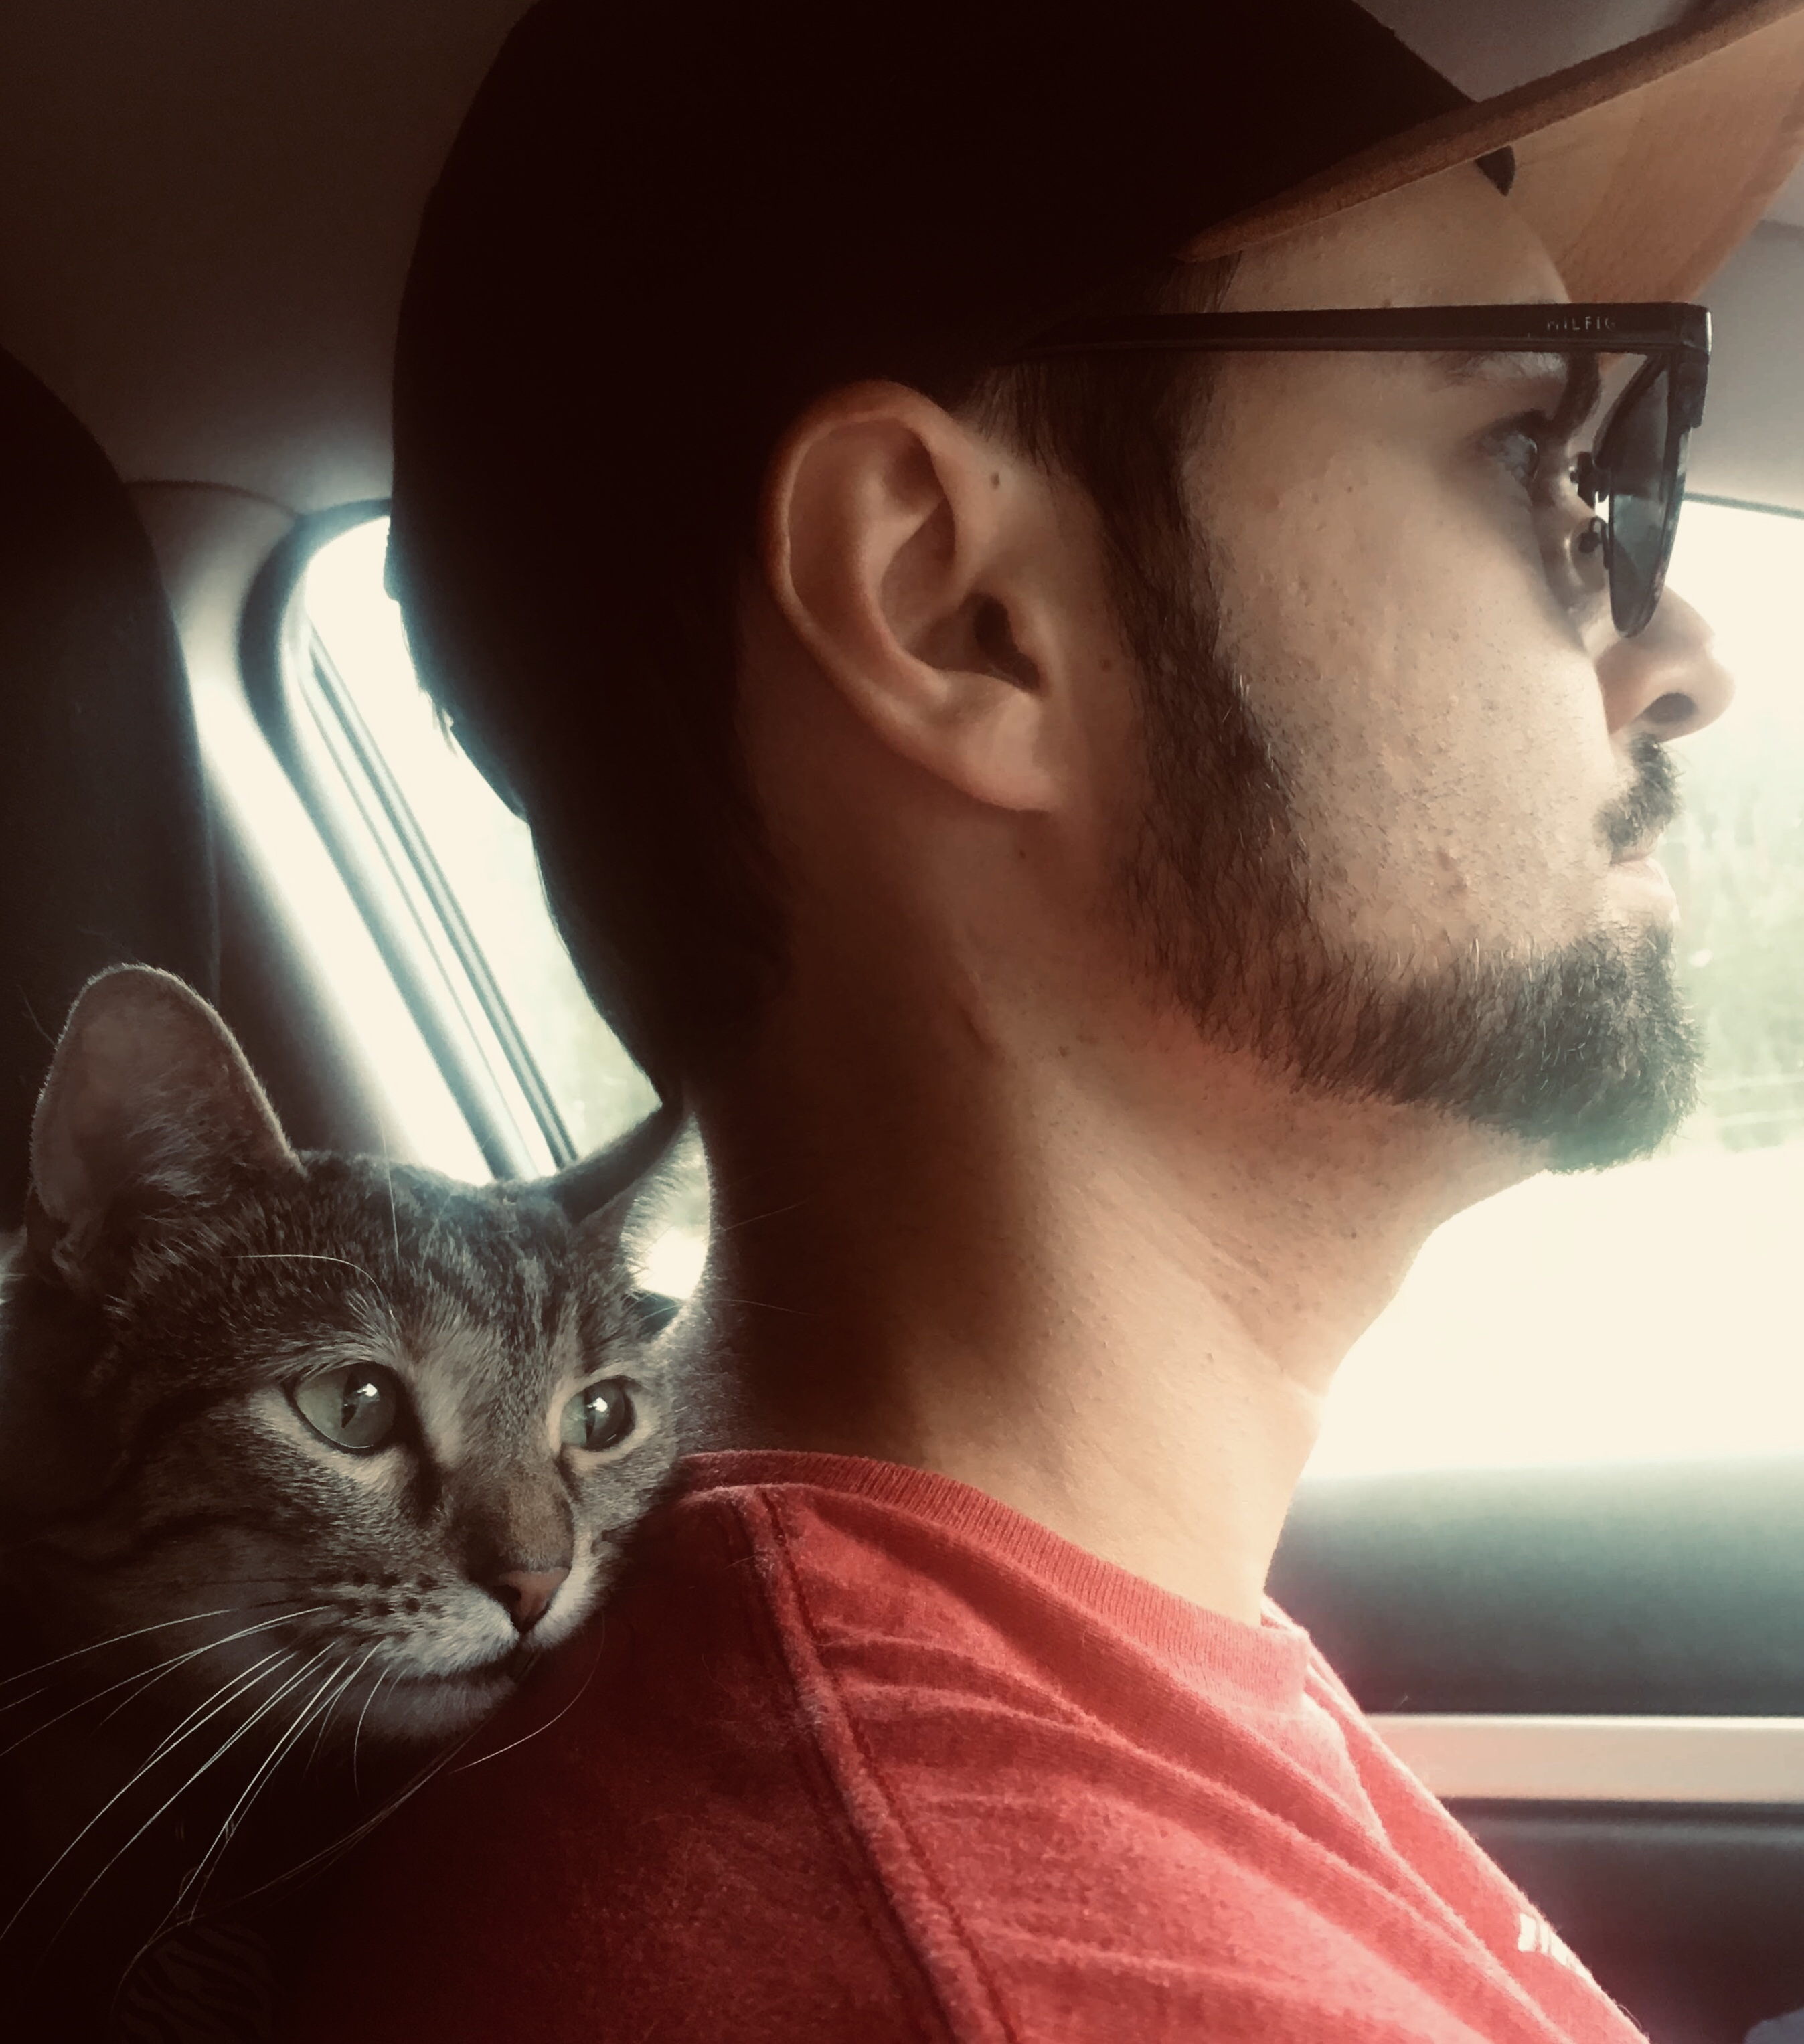 Road trip to LA with cat